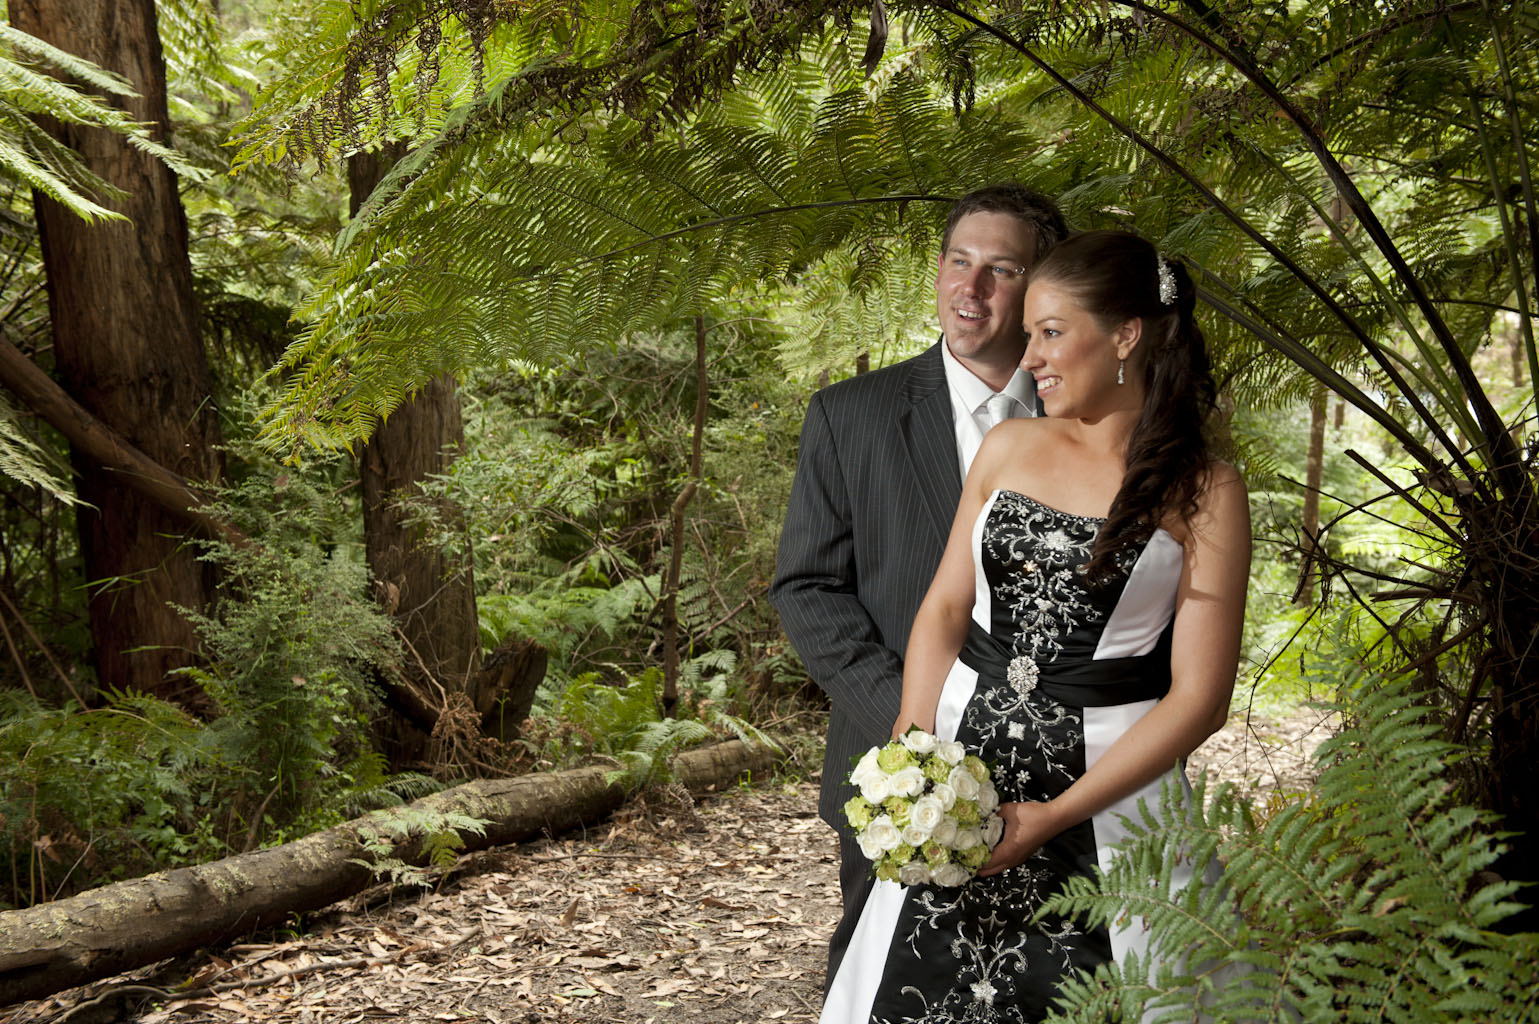 Wedding Photography showing Forest Edge winery native bushland in Gembrook